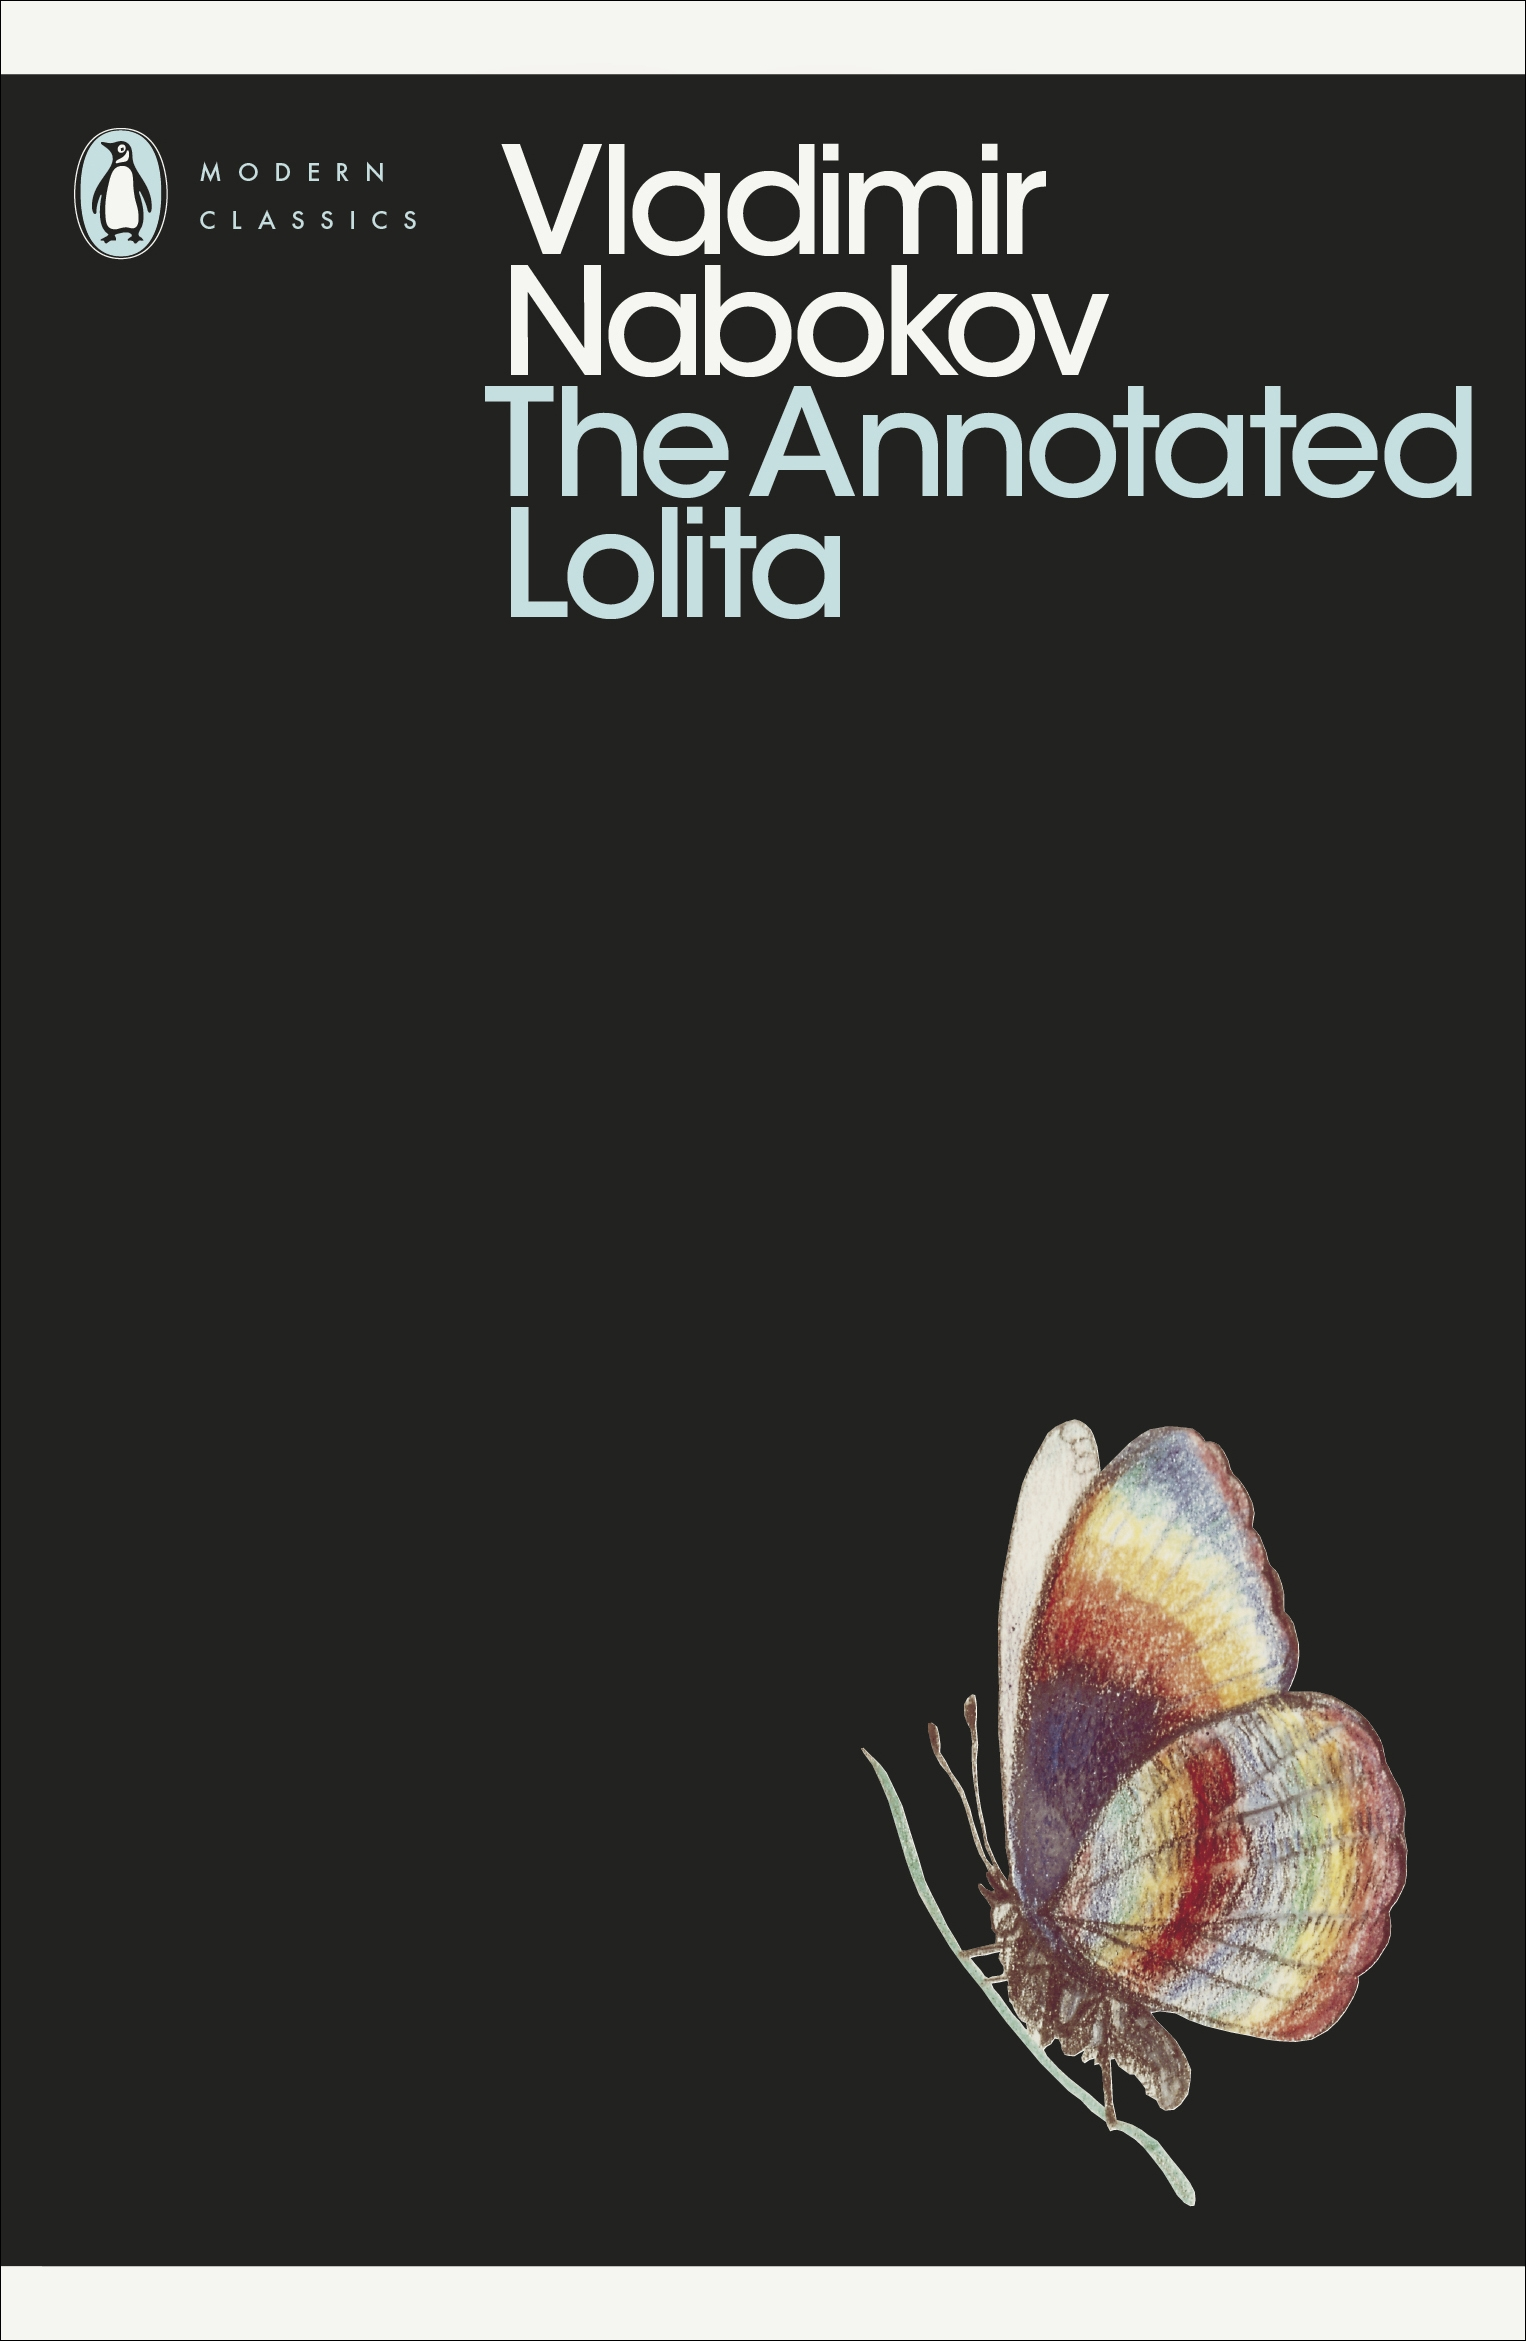 The Annotated Lolita